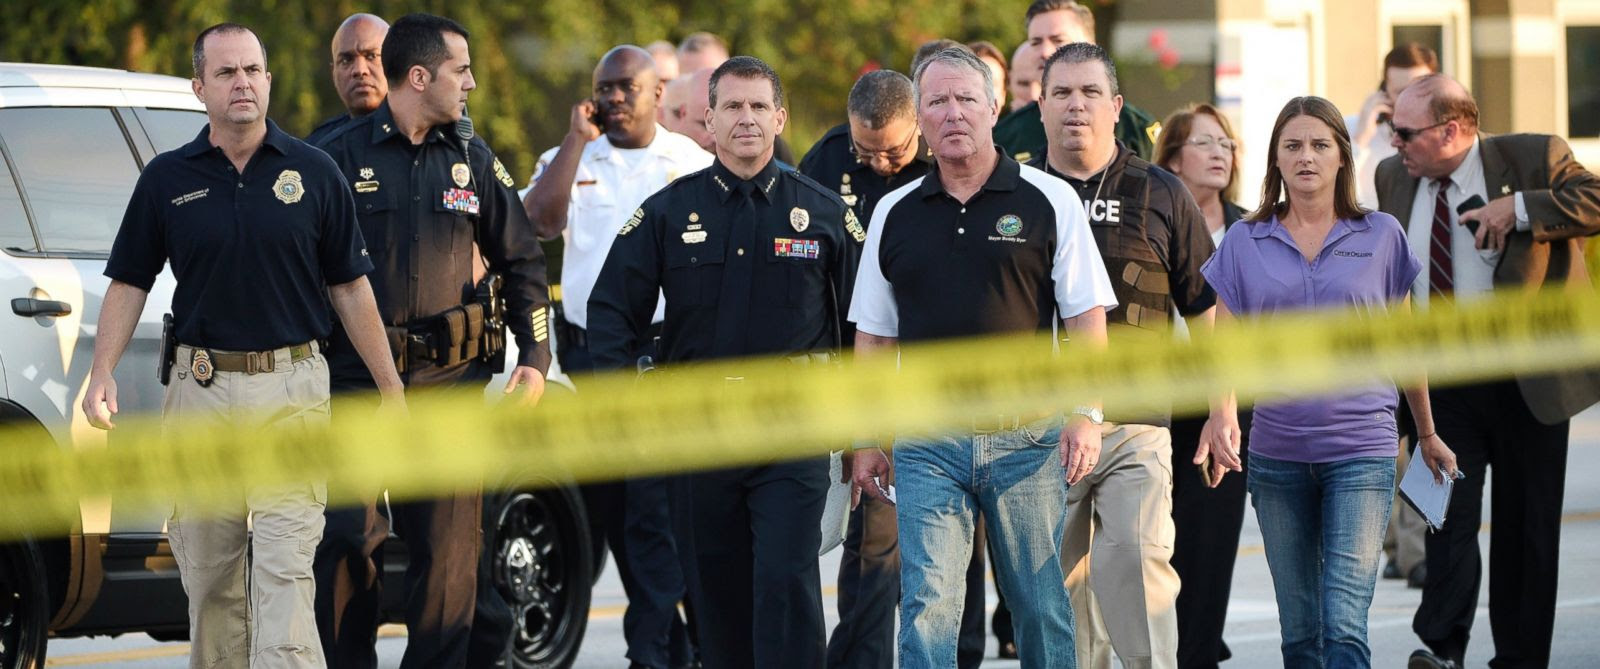 PHOTO: Orlando Mayor Buddy Dyer, center right, and Orlando Police Chief John Mina, center left, arrive to a news conference after a fatal shooting at Pulse Orlando nightclub in Orlando, Fla., June 12, 2016.